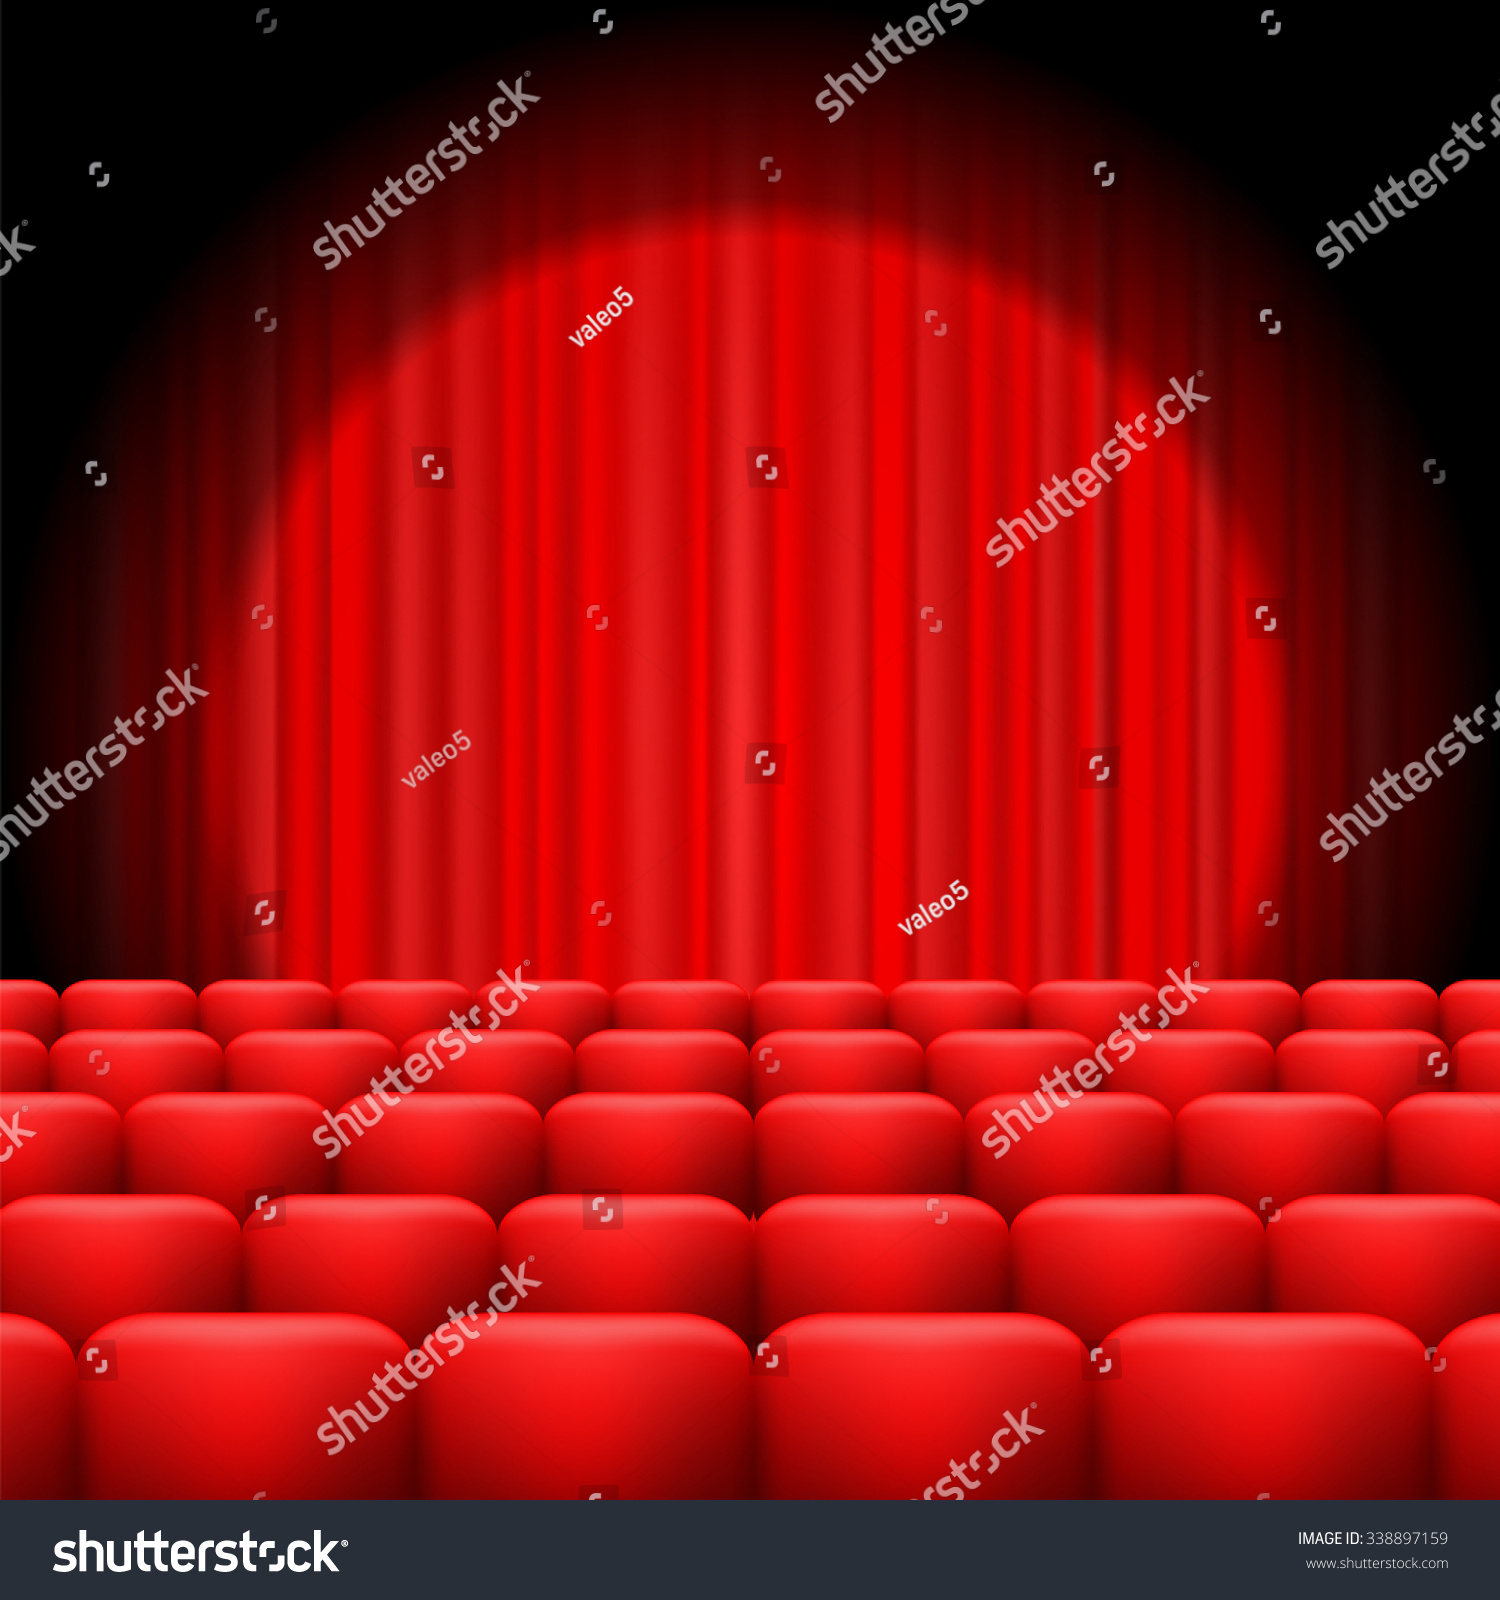 Red curtains with spotlight - Vector Red Curtains With Spotlight And Seats Classic Cinema With Red Chairs